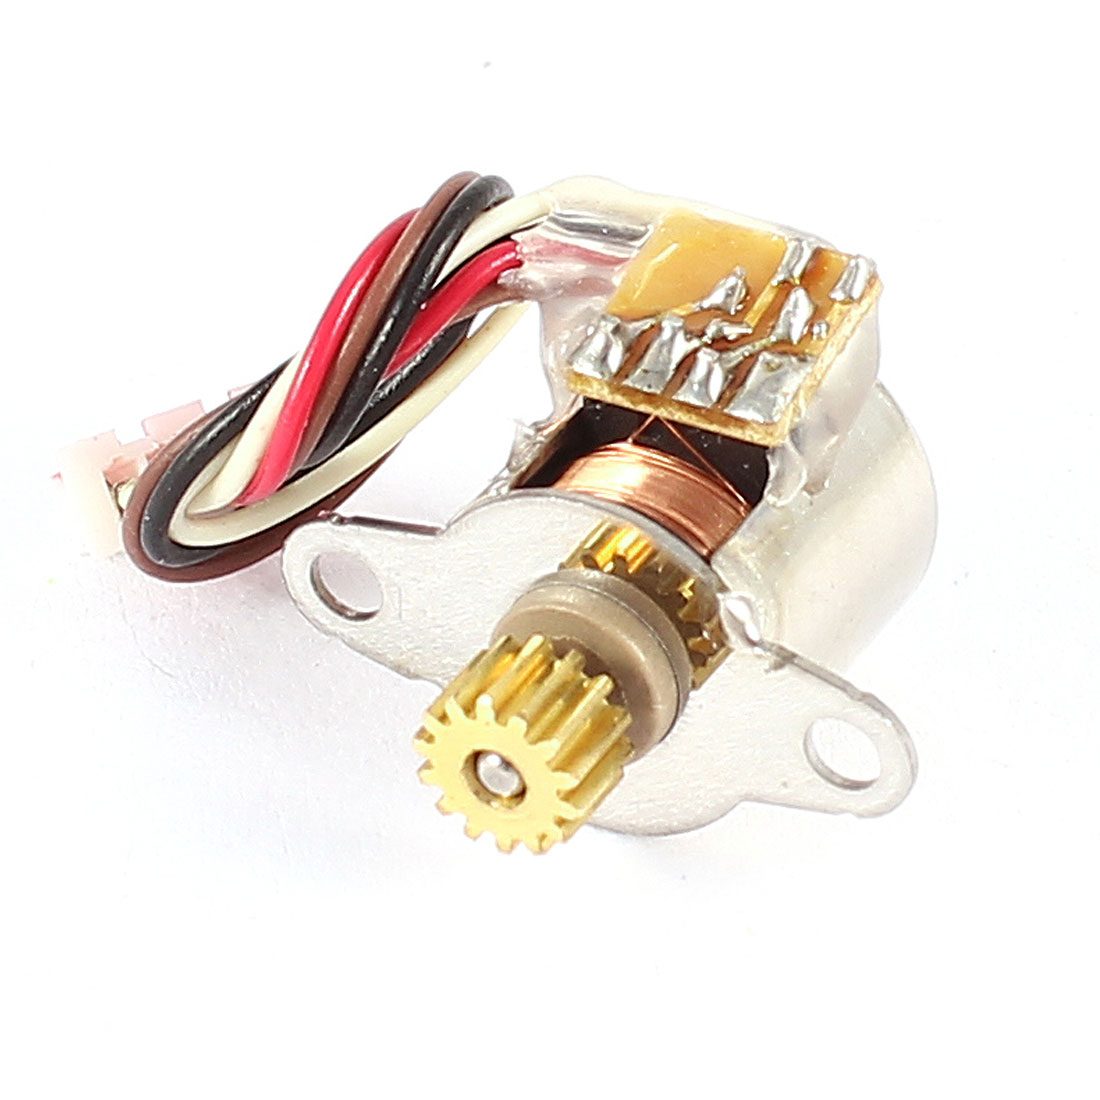 DC 3-5V 10mm Dia Reducing Stepping Stepper Motor Replacement